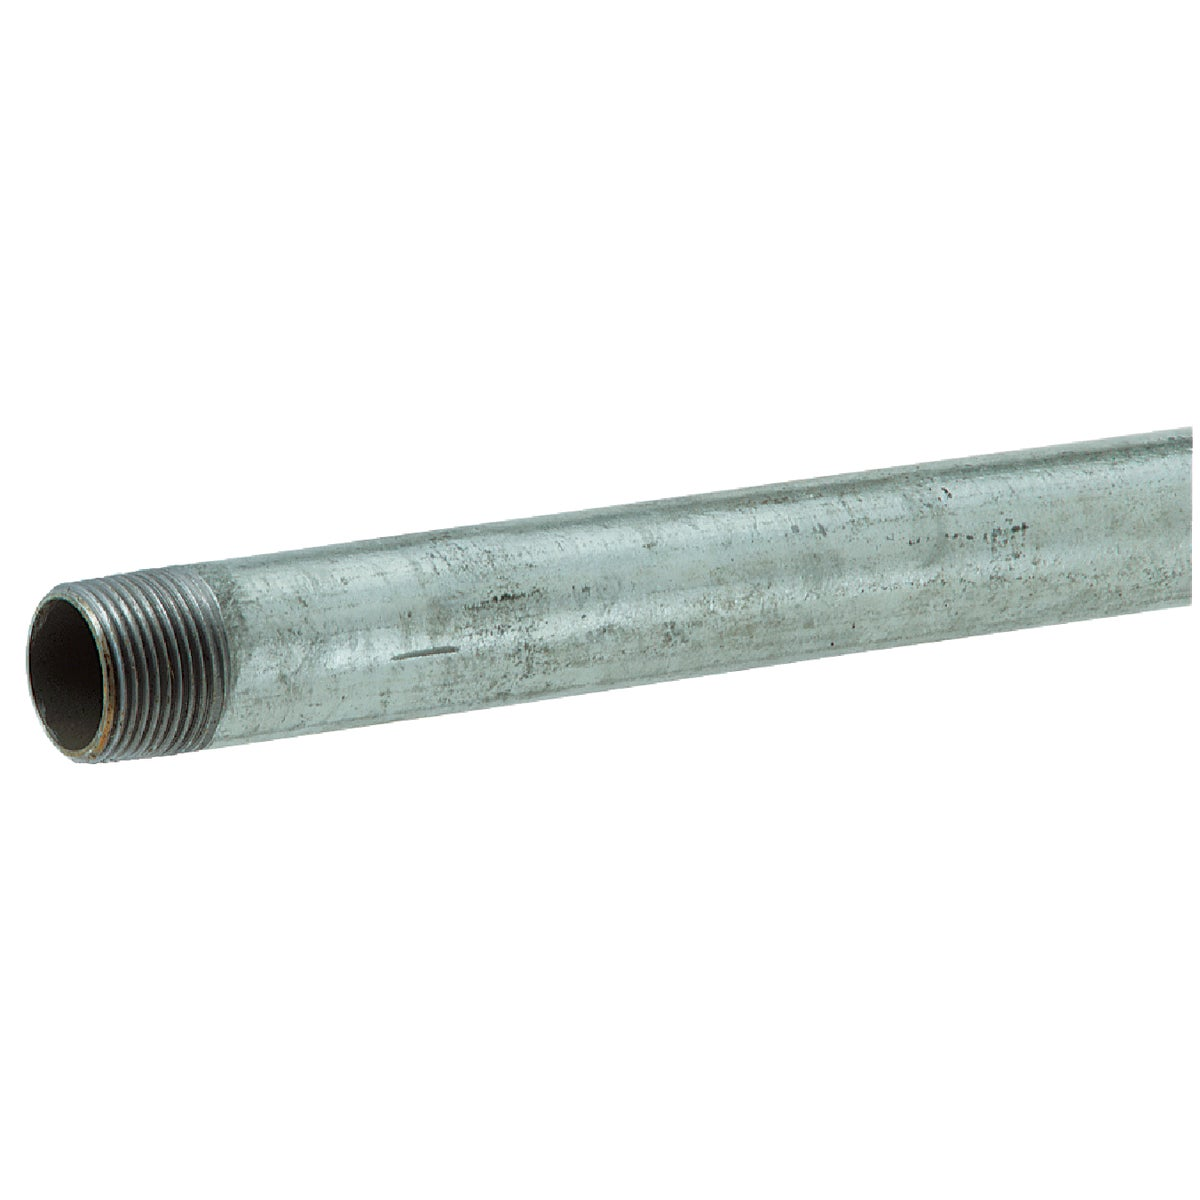 1/2X48 GALV RDI-CT PIPE - 1/2X48 by Southland Pipe Nippl